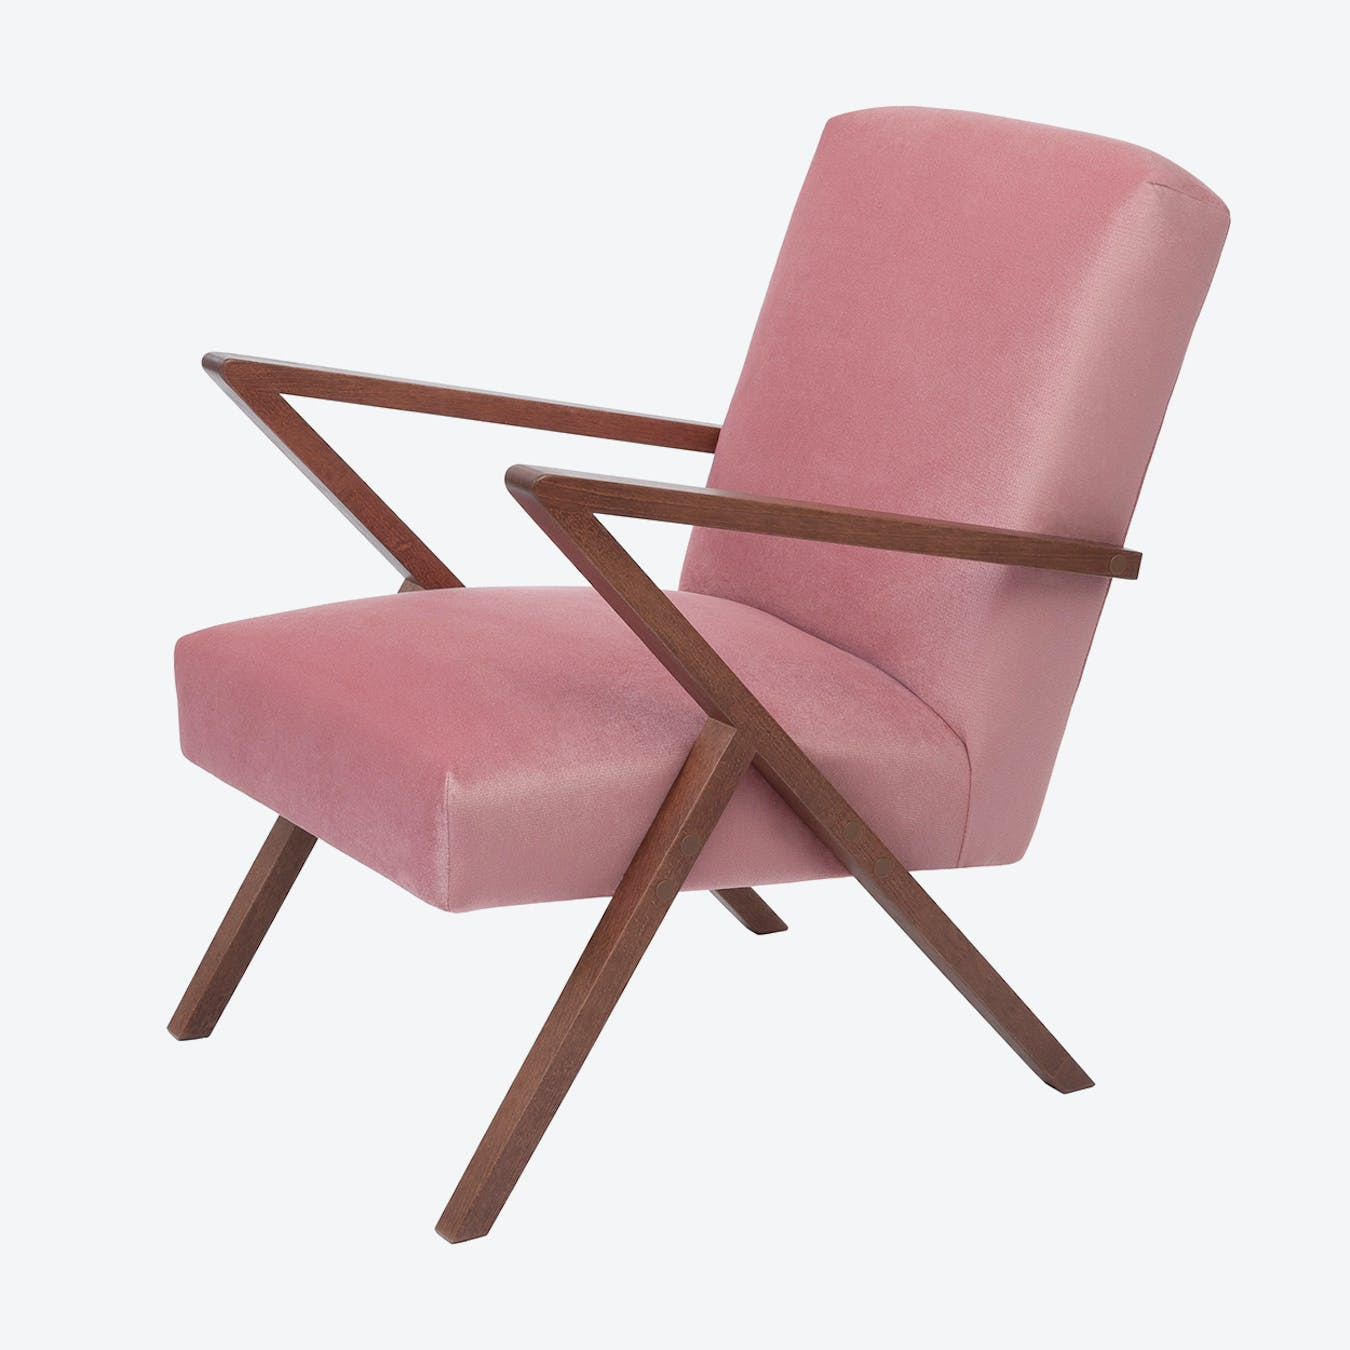 Retrostar Chair- Velvet Line in Rosa Vintage Pink